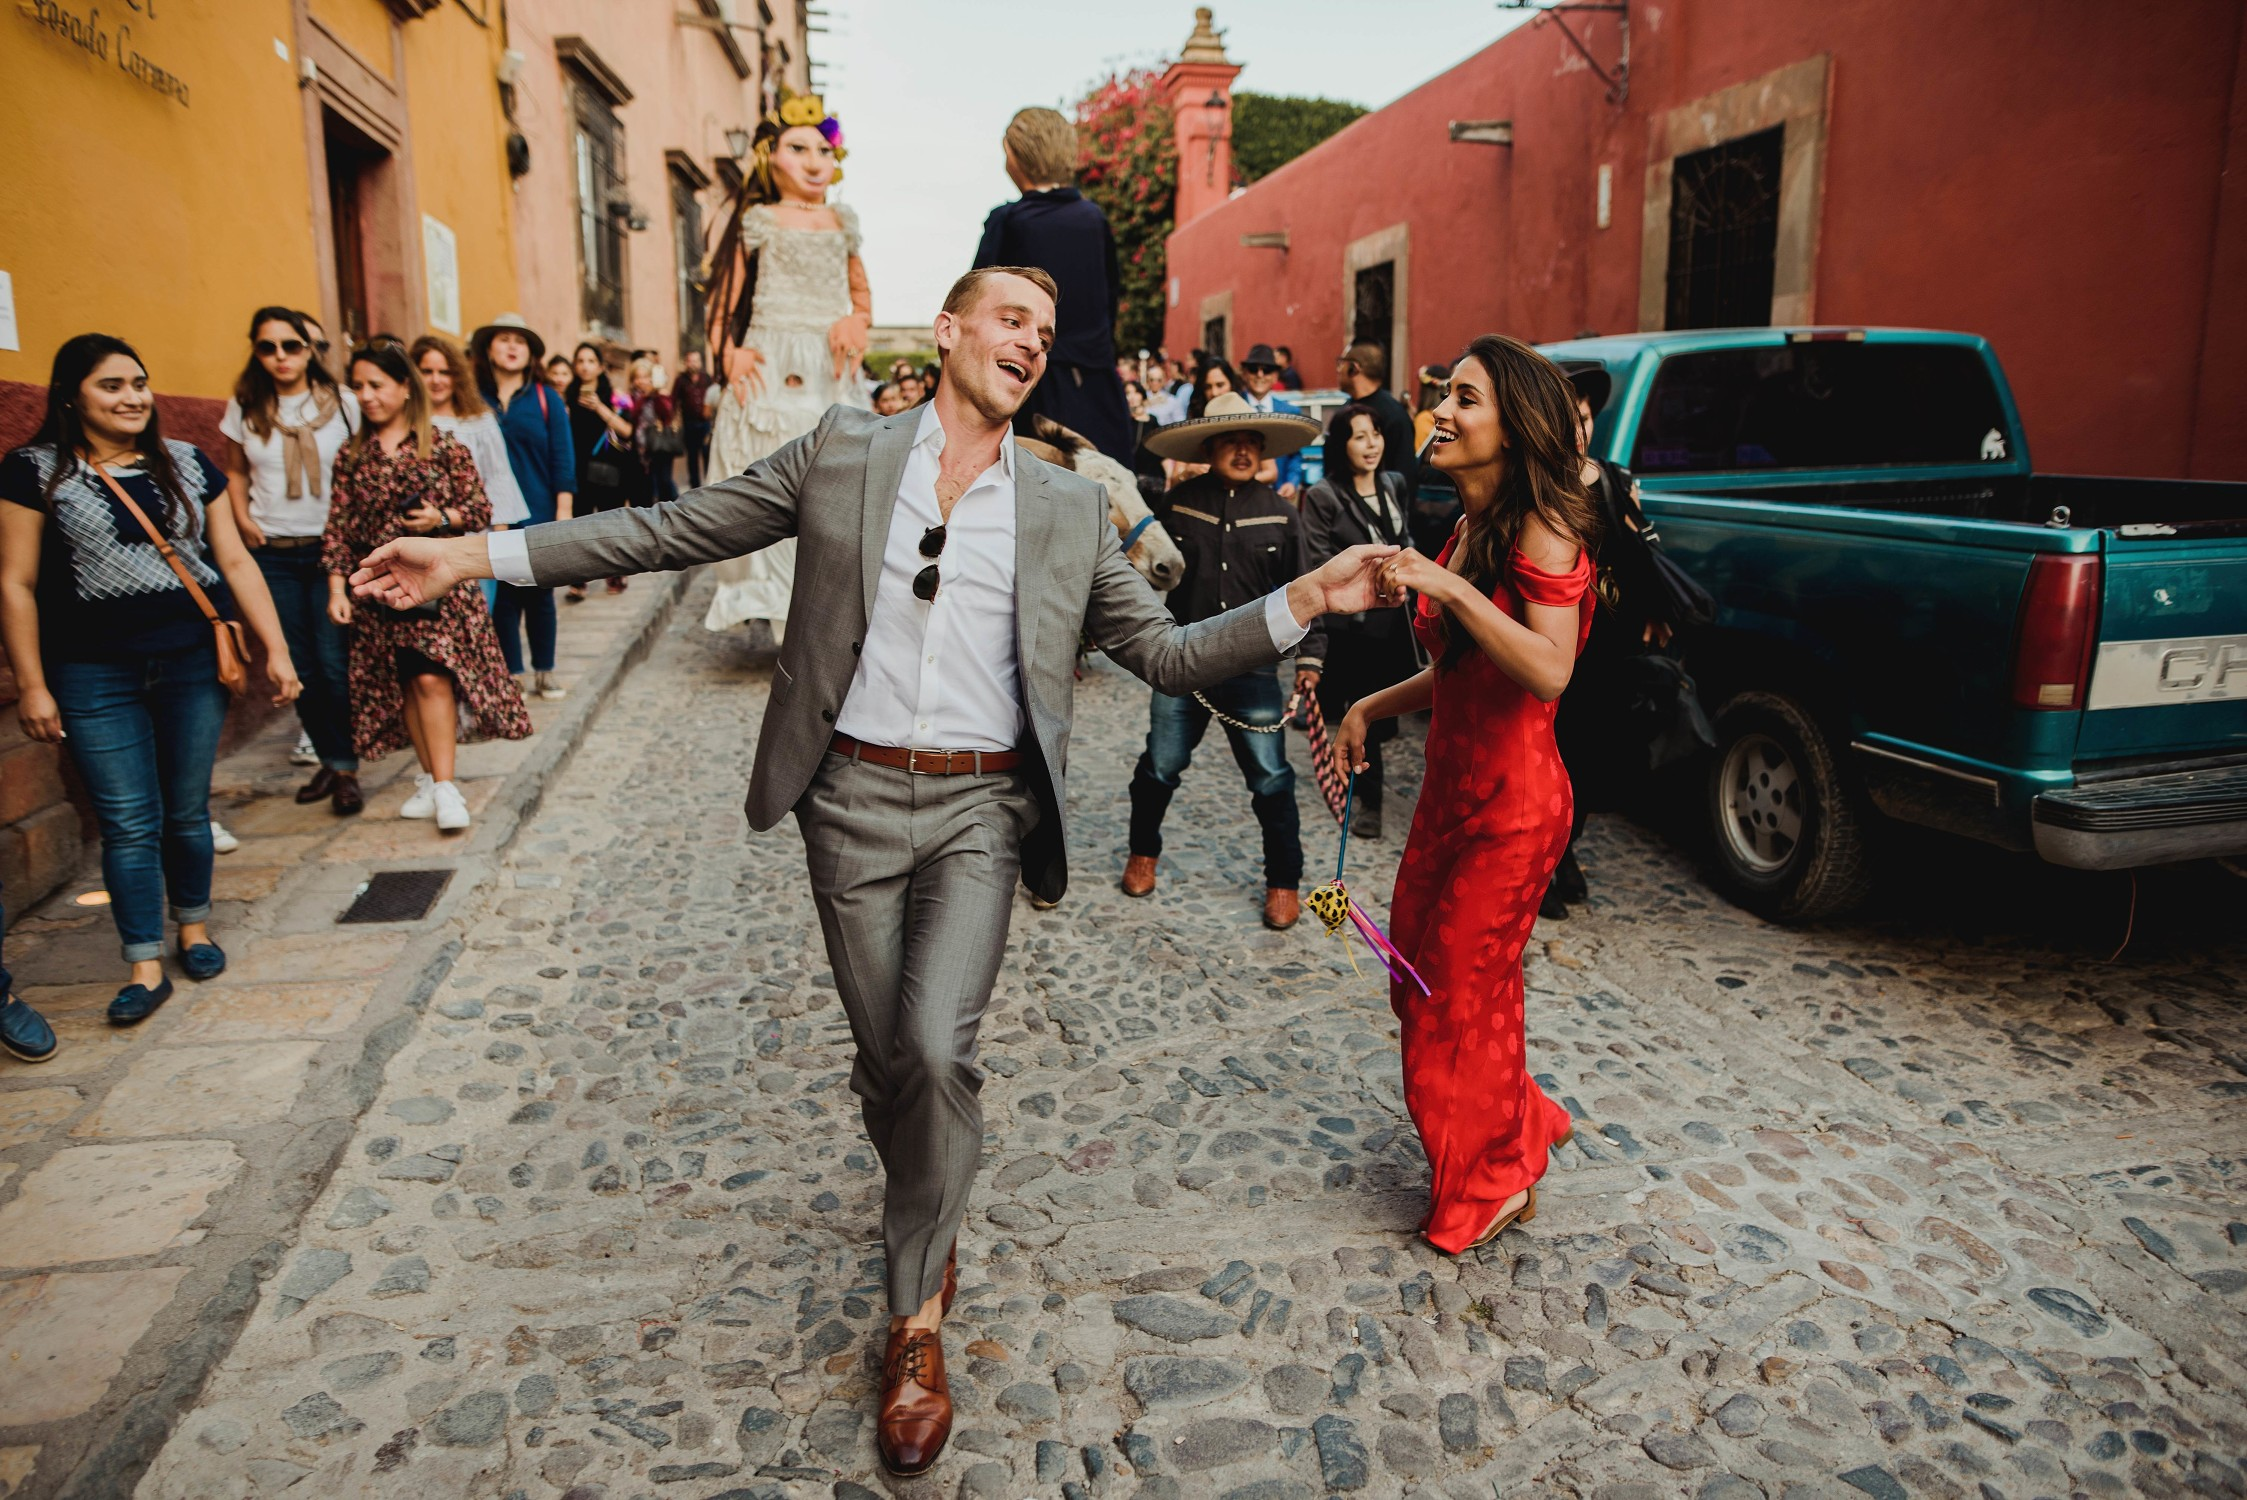 Mexico Destination Wedding - Bahar & Nick - Virginia & Evan